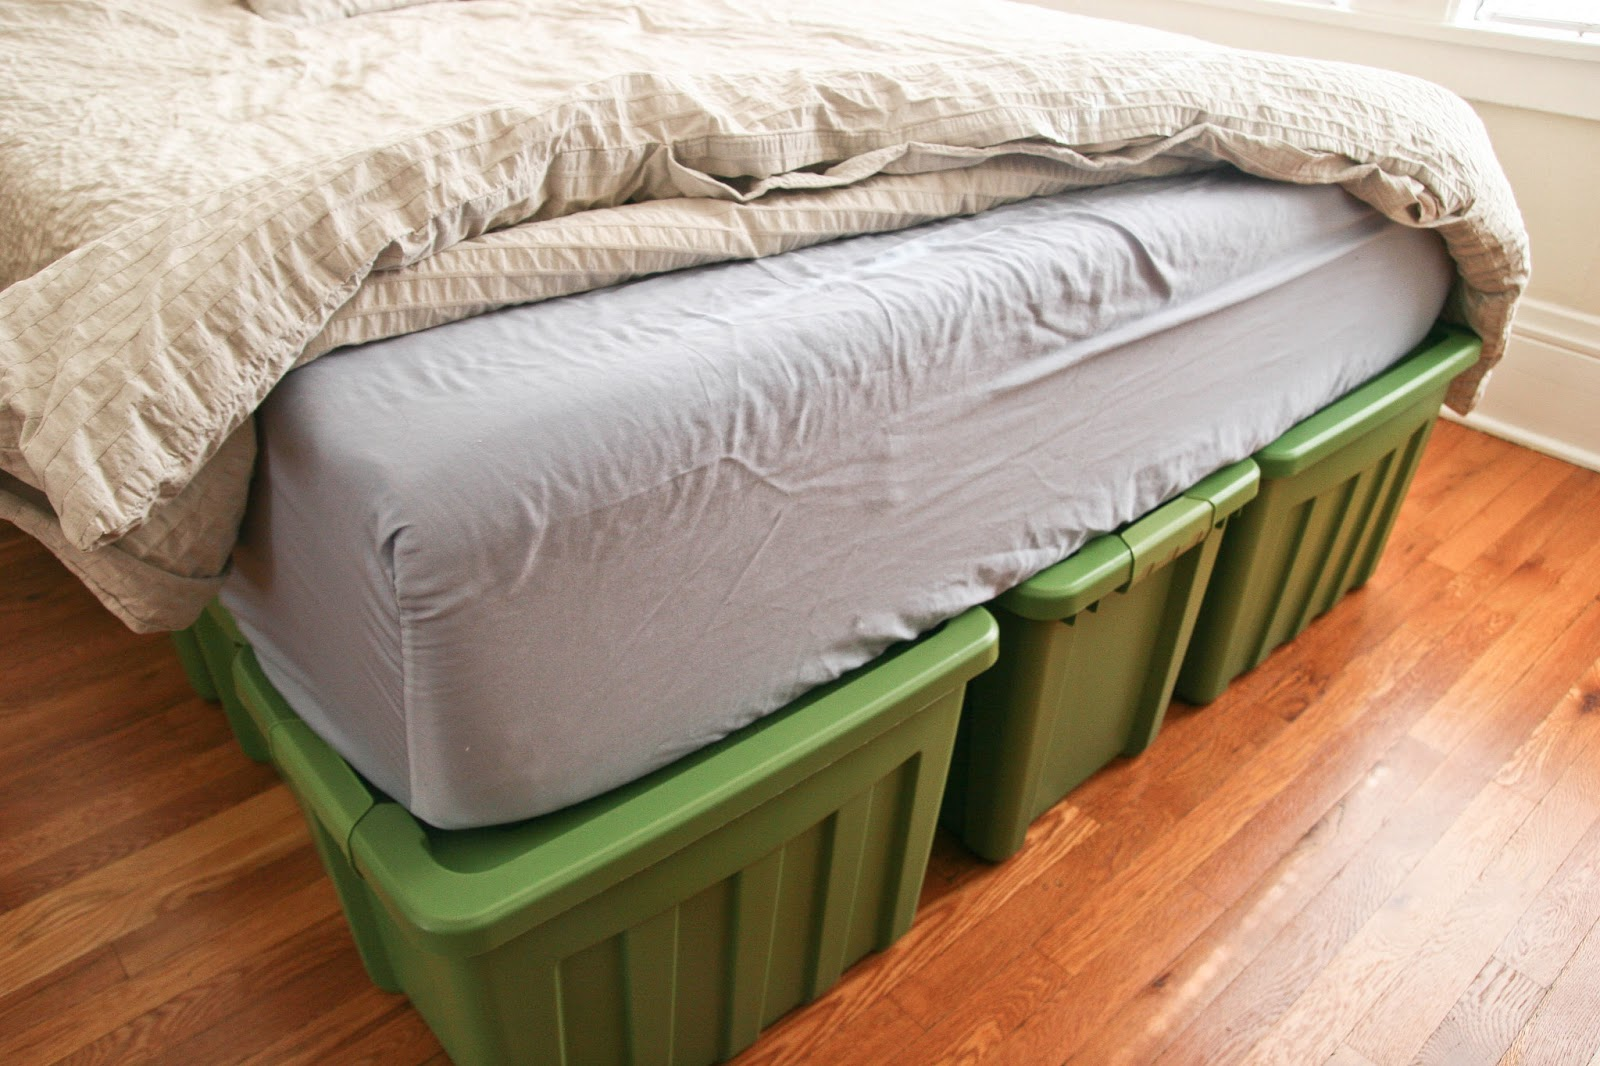 Ellies Wonder: A Rubbermaid Bed Frame!